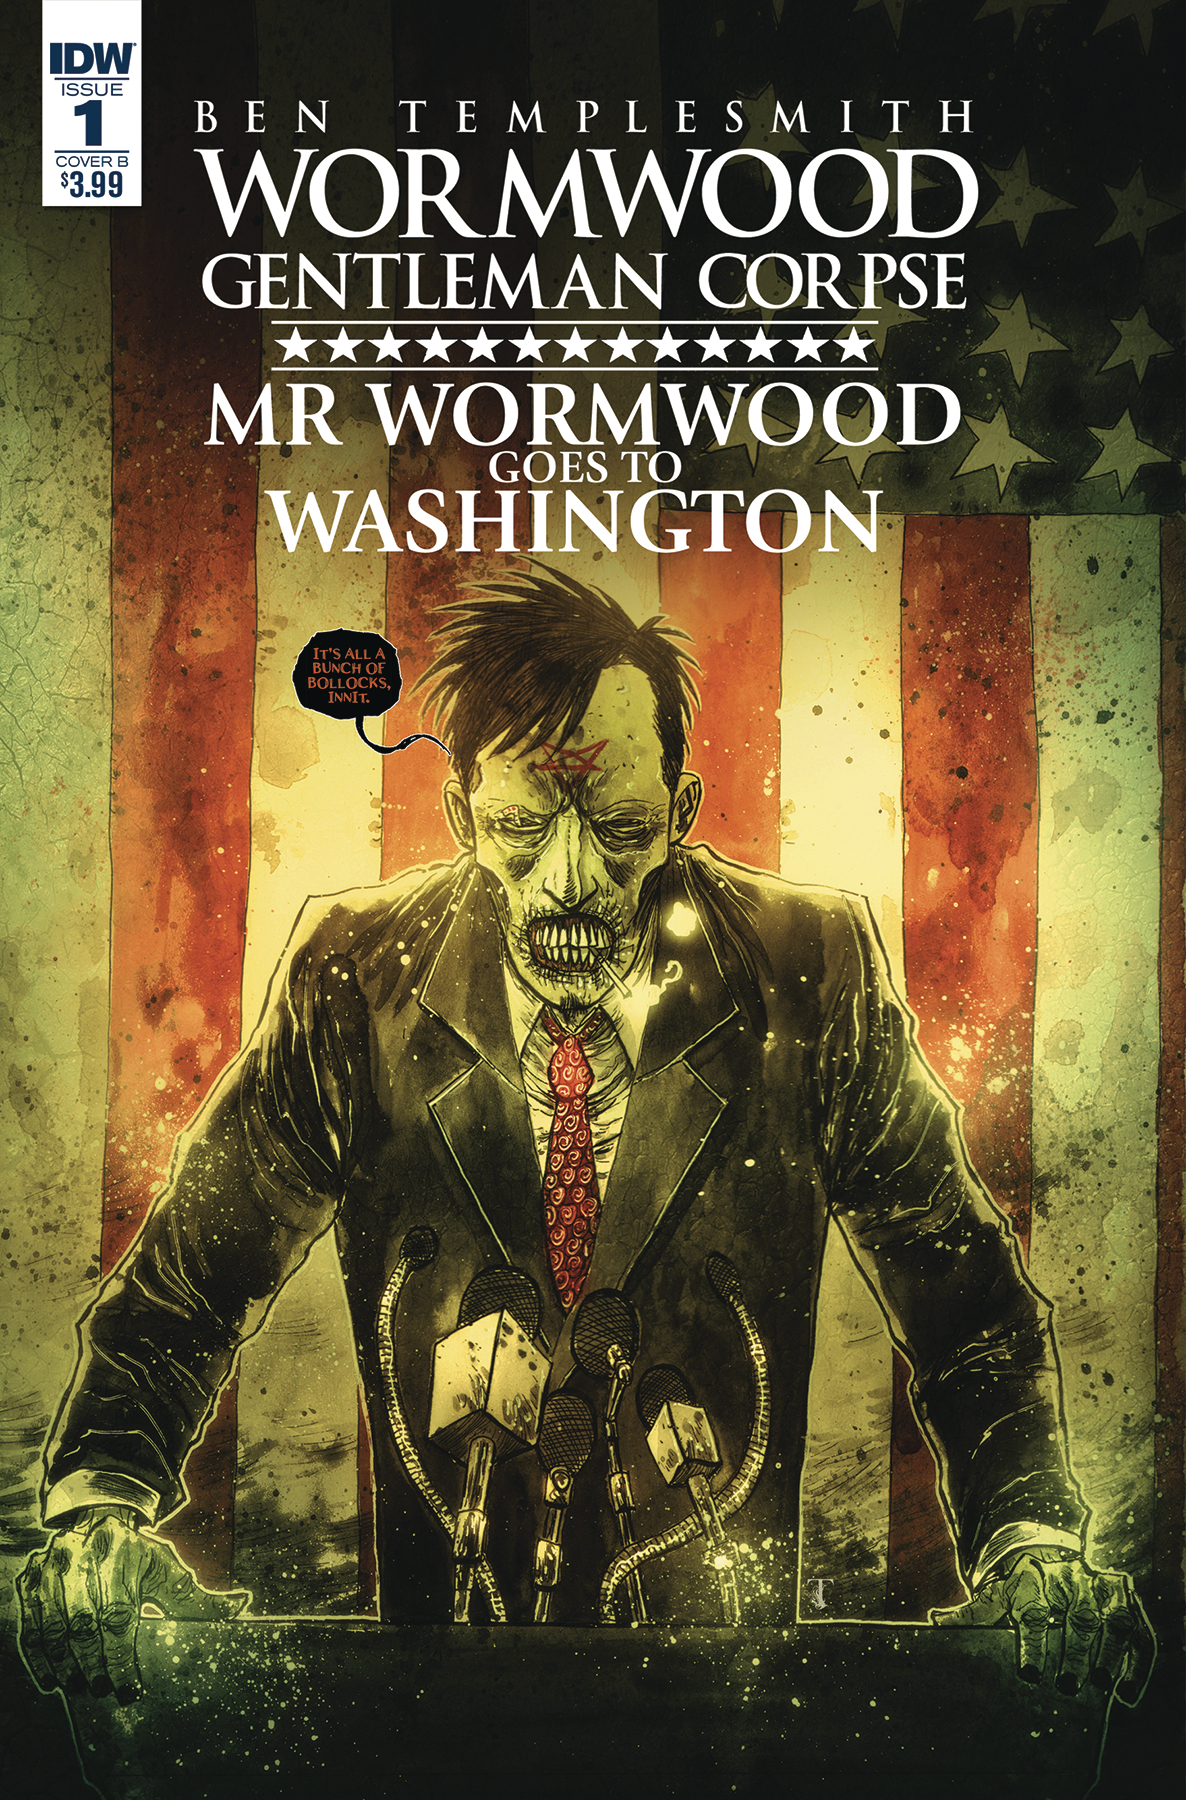 WORMWOOD GOES TO WASHINGTON #1